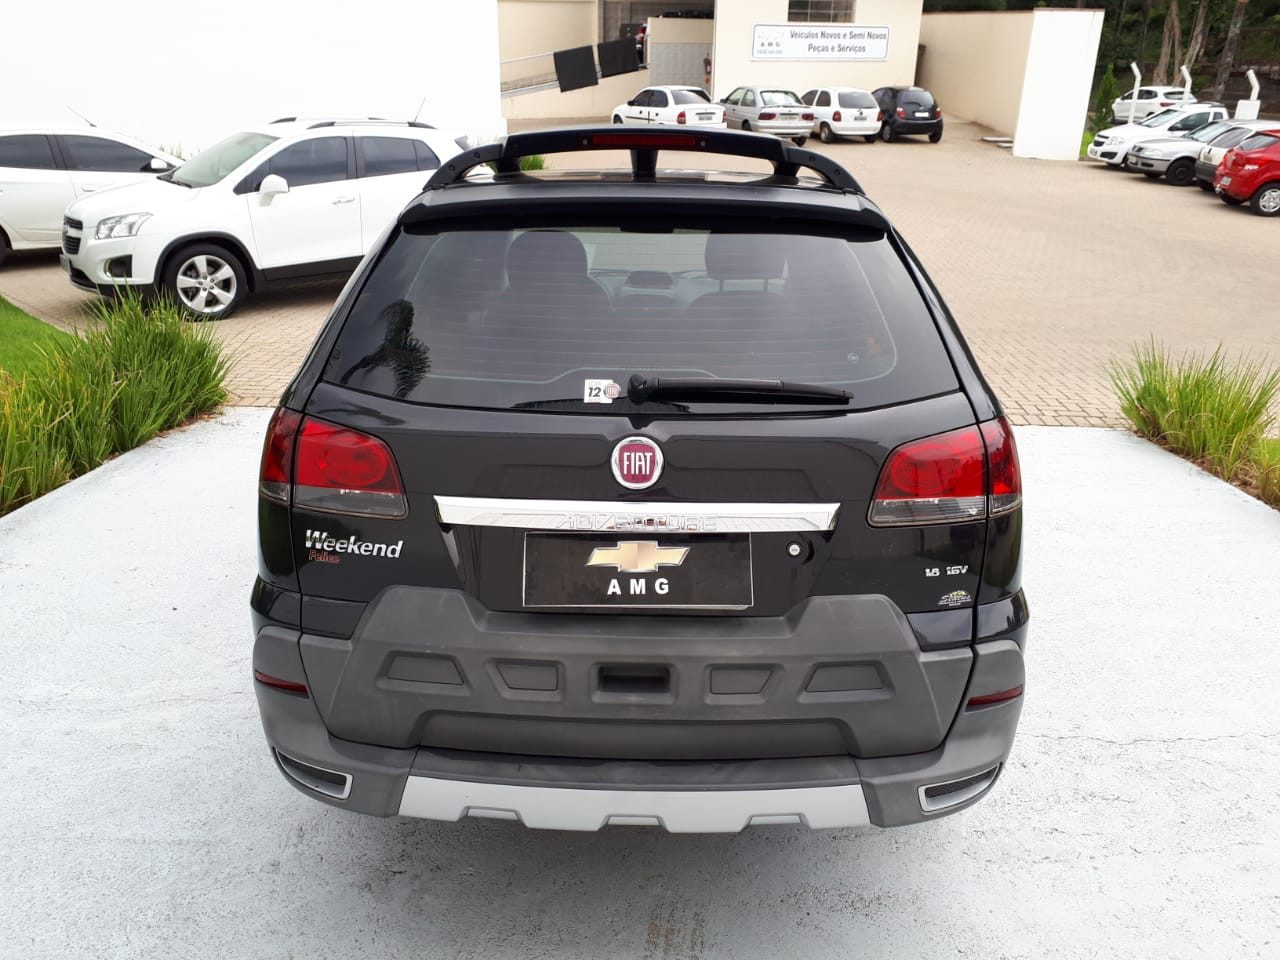 FIAT PALIO WEEKEND ADVENTURE 1.8 2015